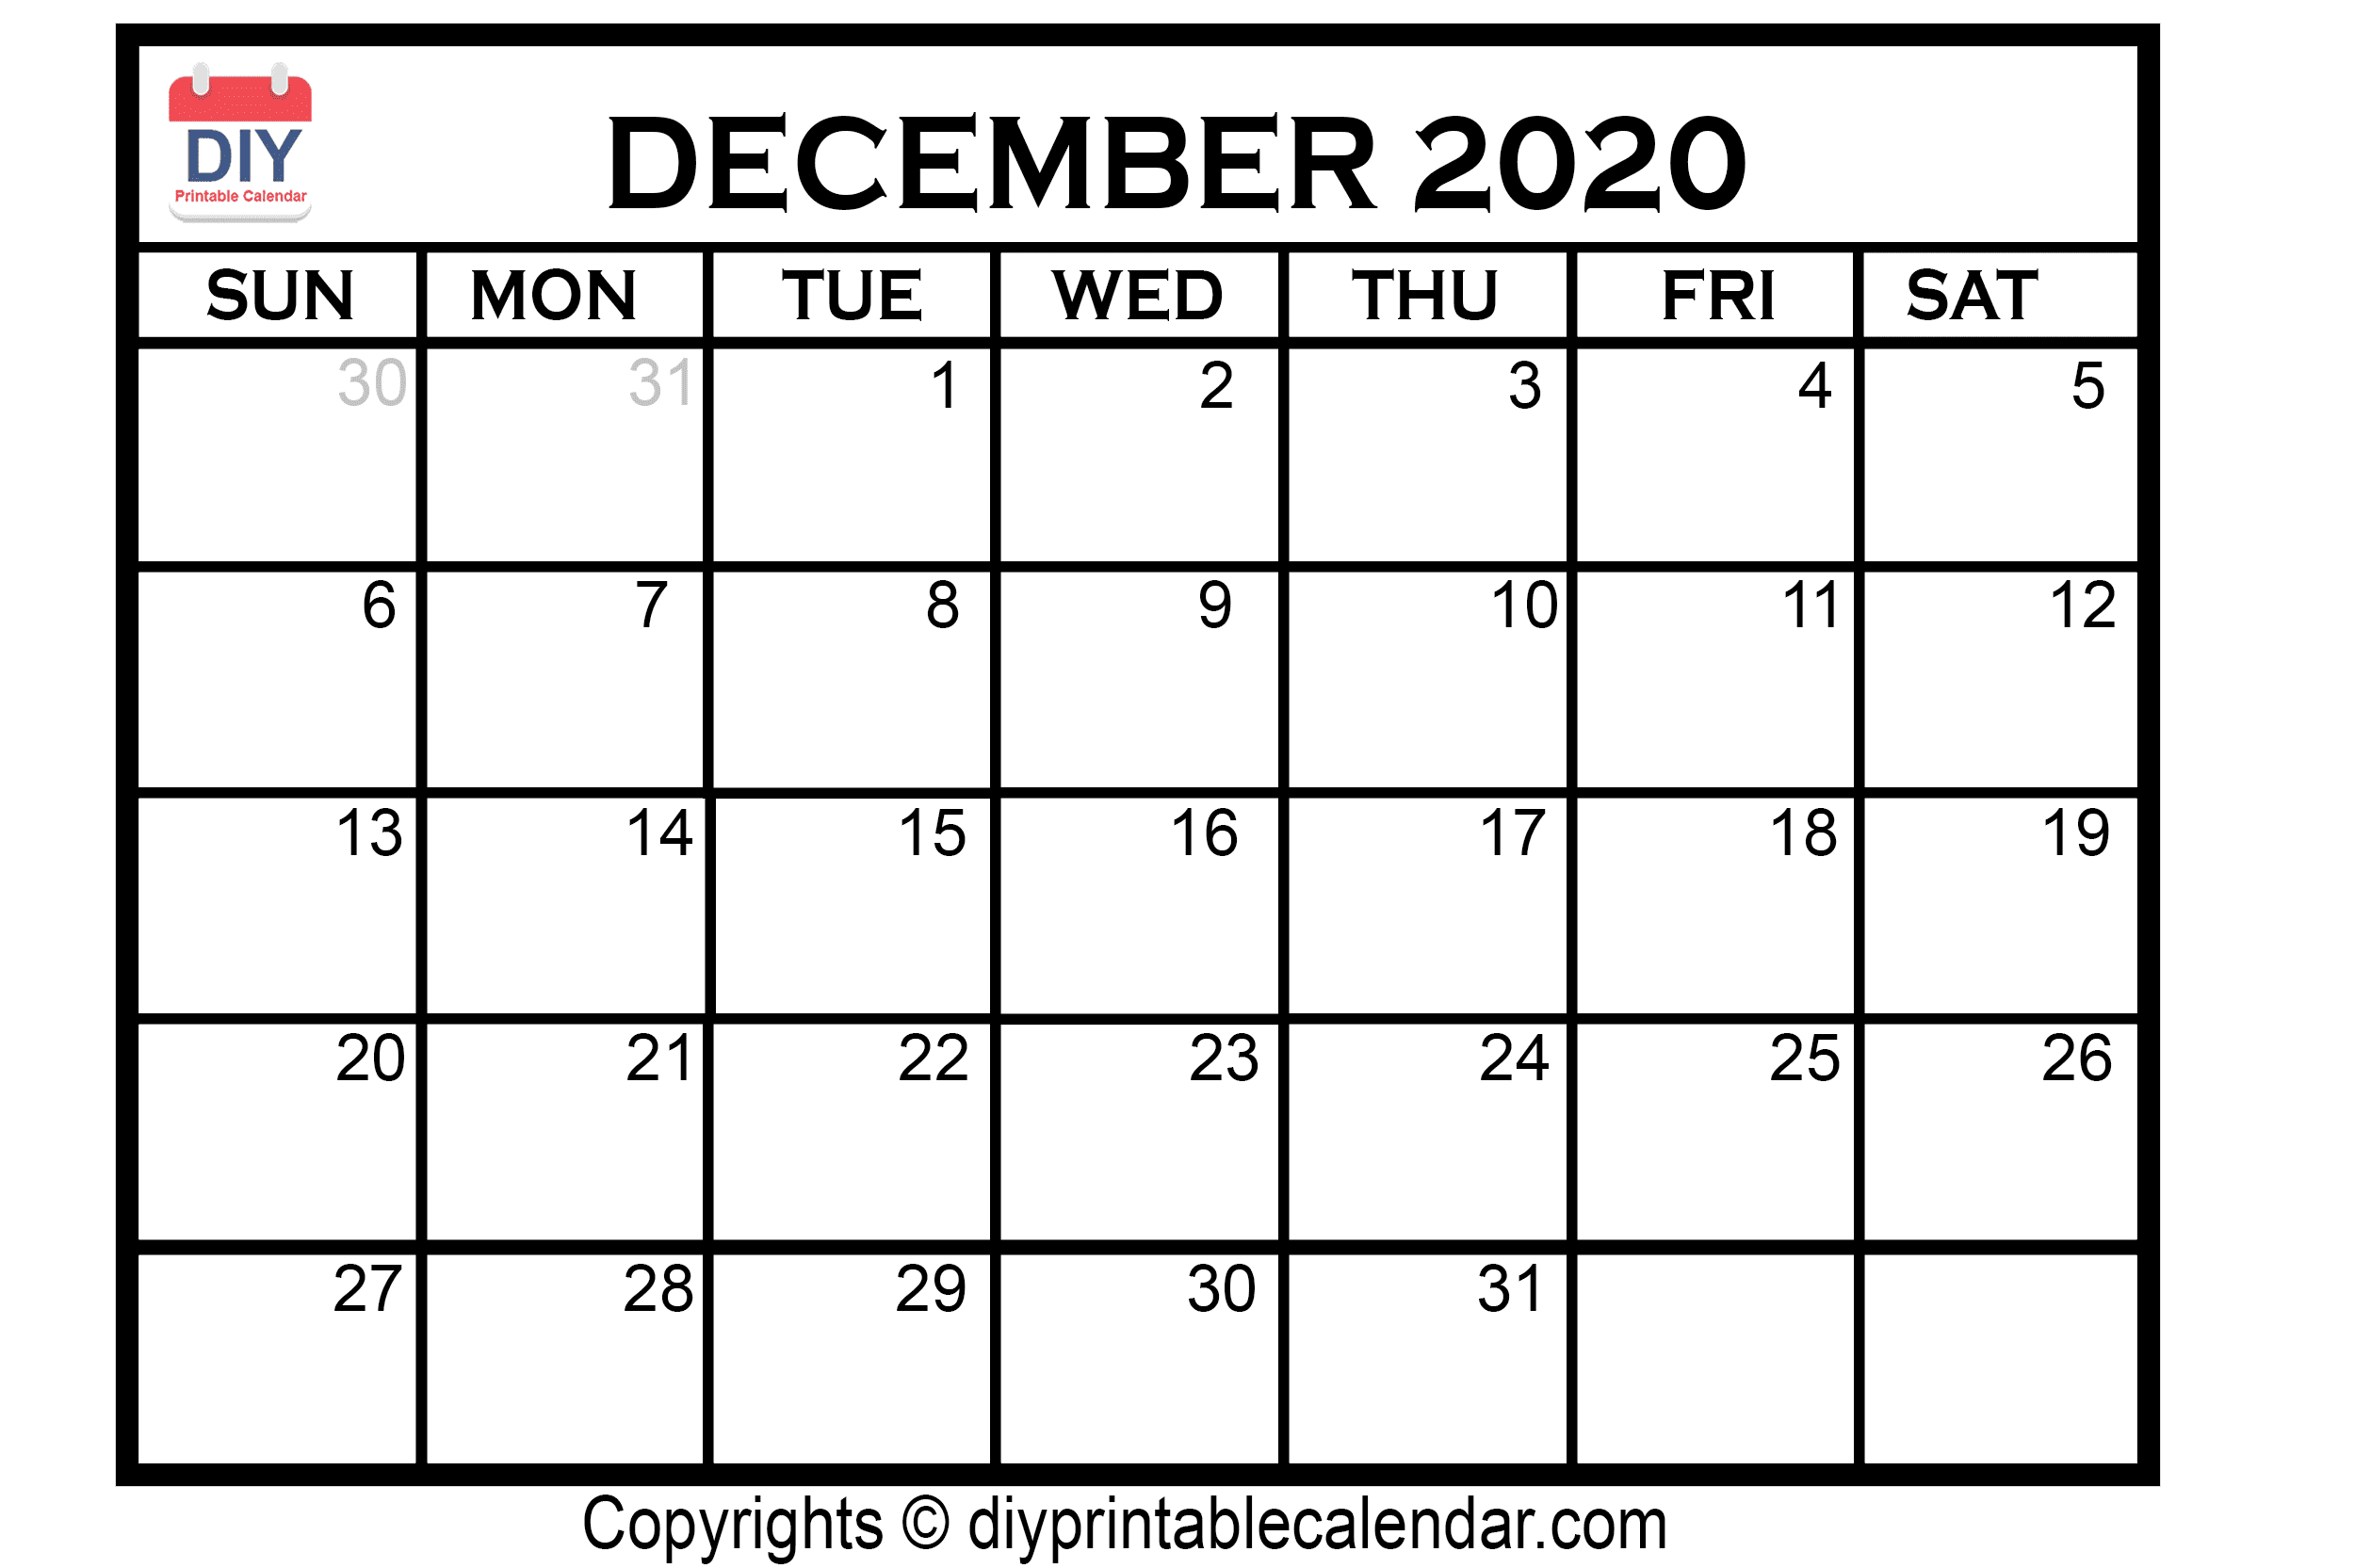 December 2020 Printable Calendar Template throughout Calander For December 2020